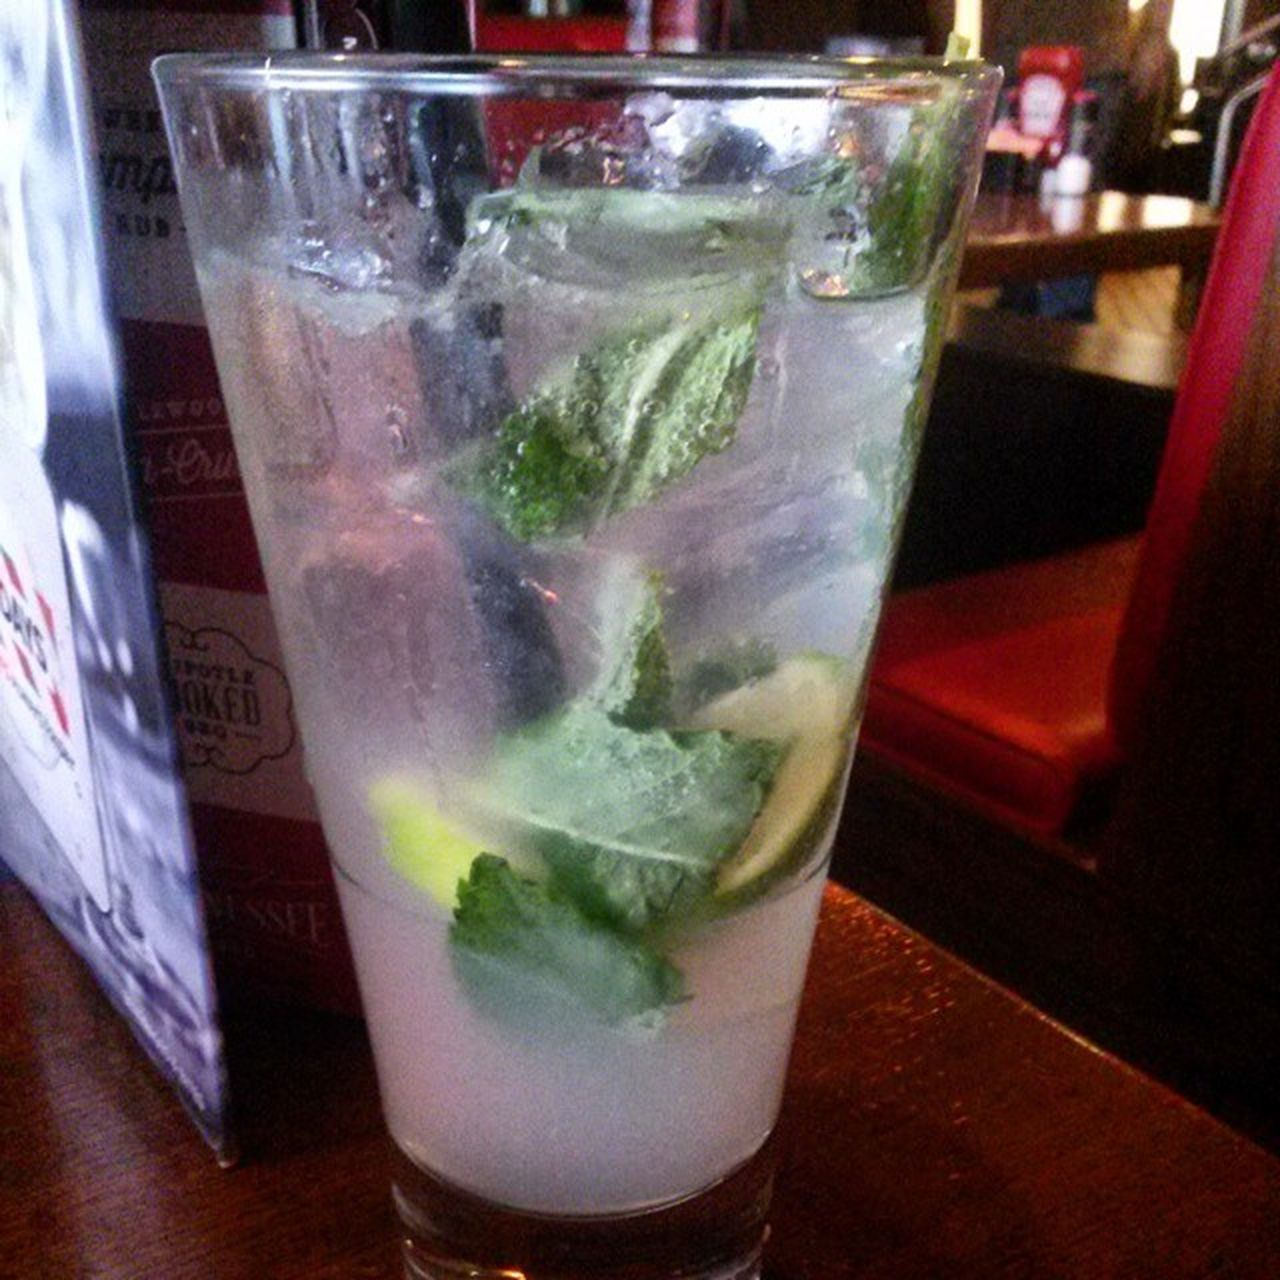 drink, drinking glass, food and drink, refreshment, cold temperature, mojito, cocktail, freshness, indoors, mint leaf - culinary, alcohol, drinking straw, close-up, tonic water, slice, ice cube, table, no people, day